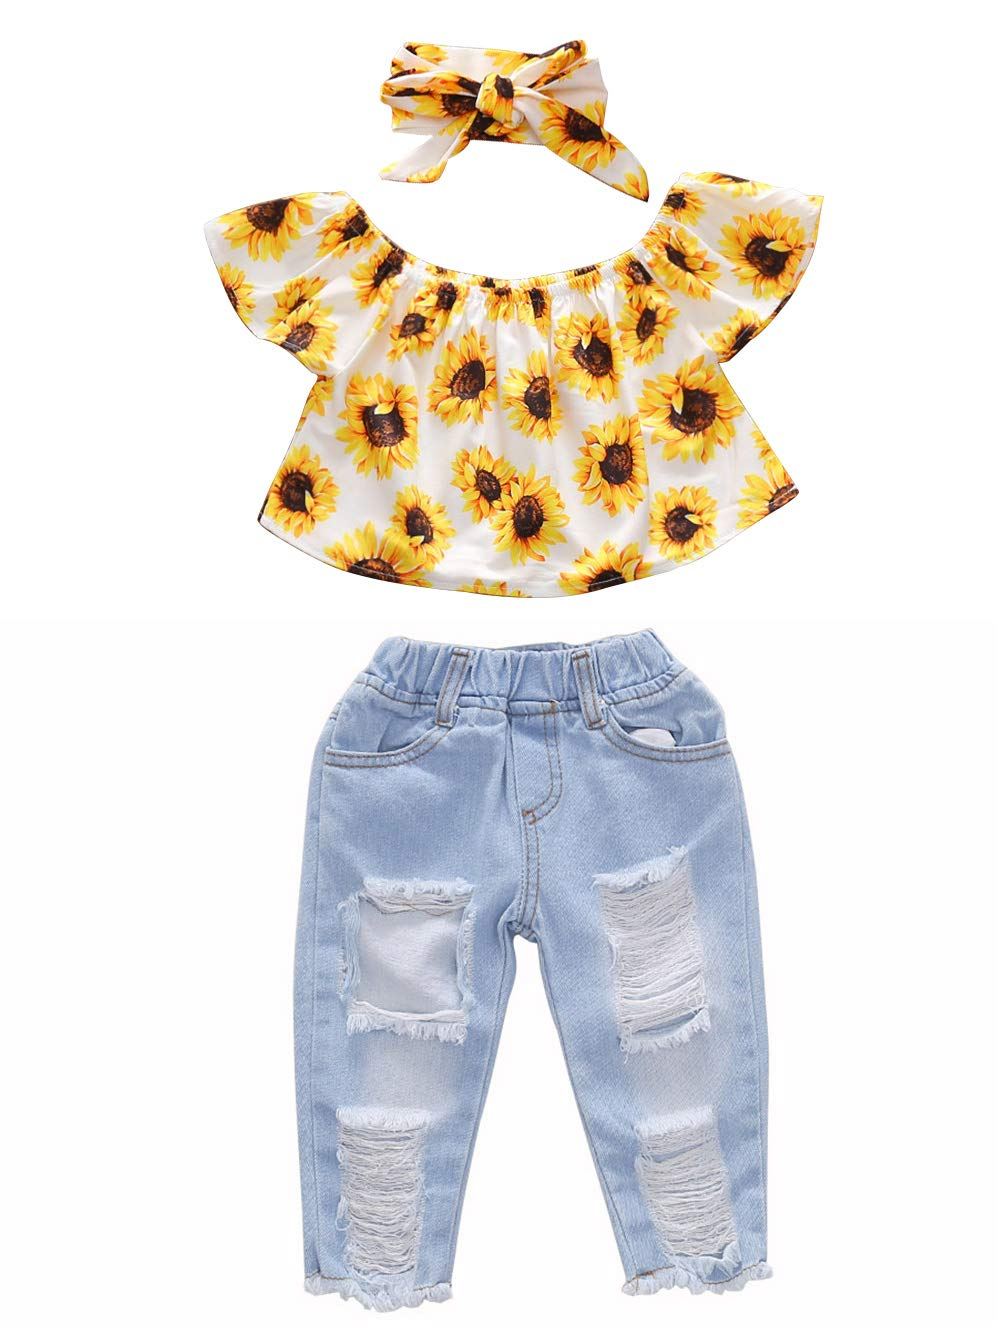 MTSLYH Baby Girl Sunflower Ruffle Off Shoulder Top+Ripped Denim Jean Pant+Headband Set